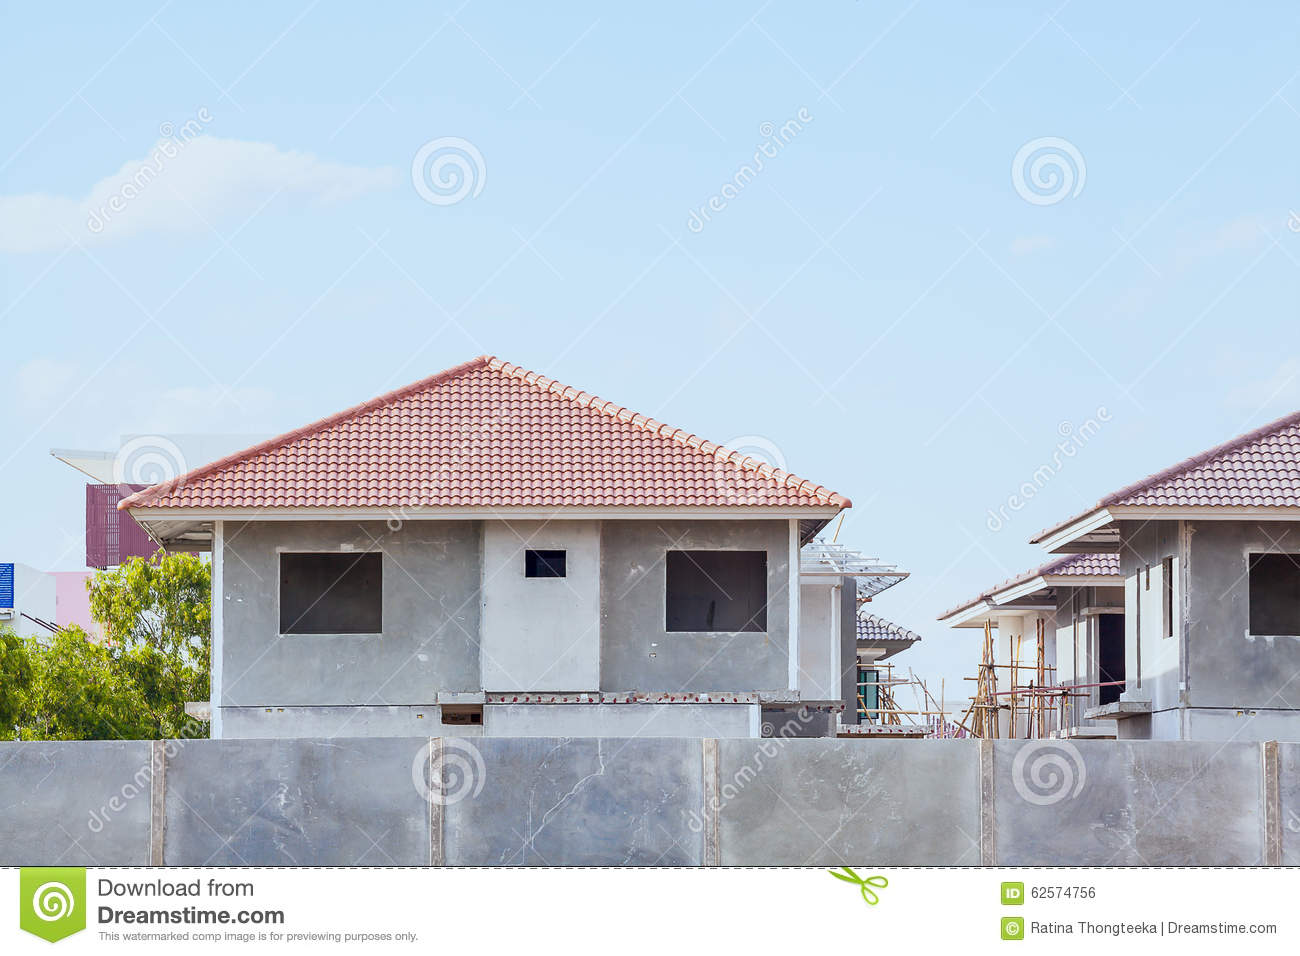 House building and construction site village in progress for House building website